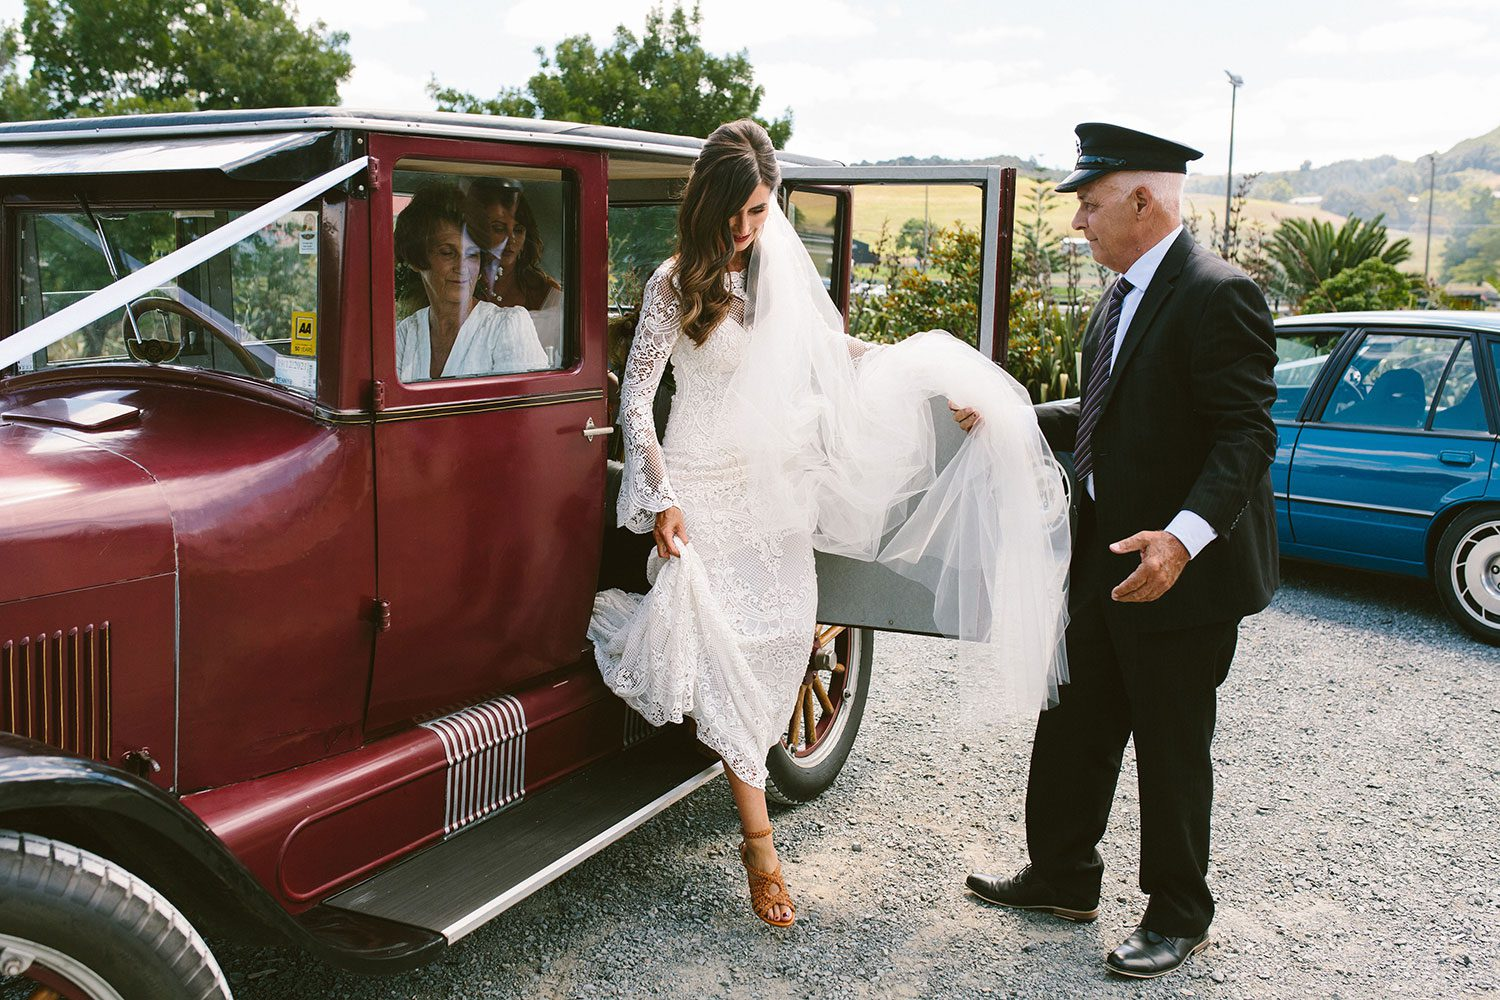 Bride wearing Sabine wedding gown by Auckland wedding dress maker Vinka Design, with French crochet lace detail and long sleeves - stepping out of vintage car